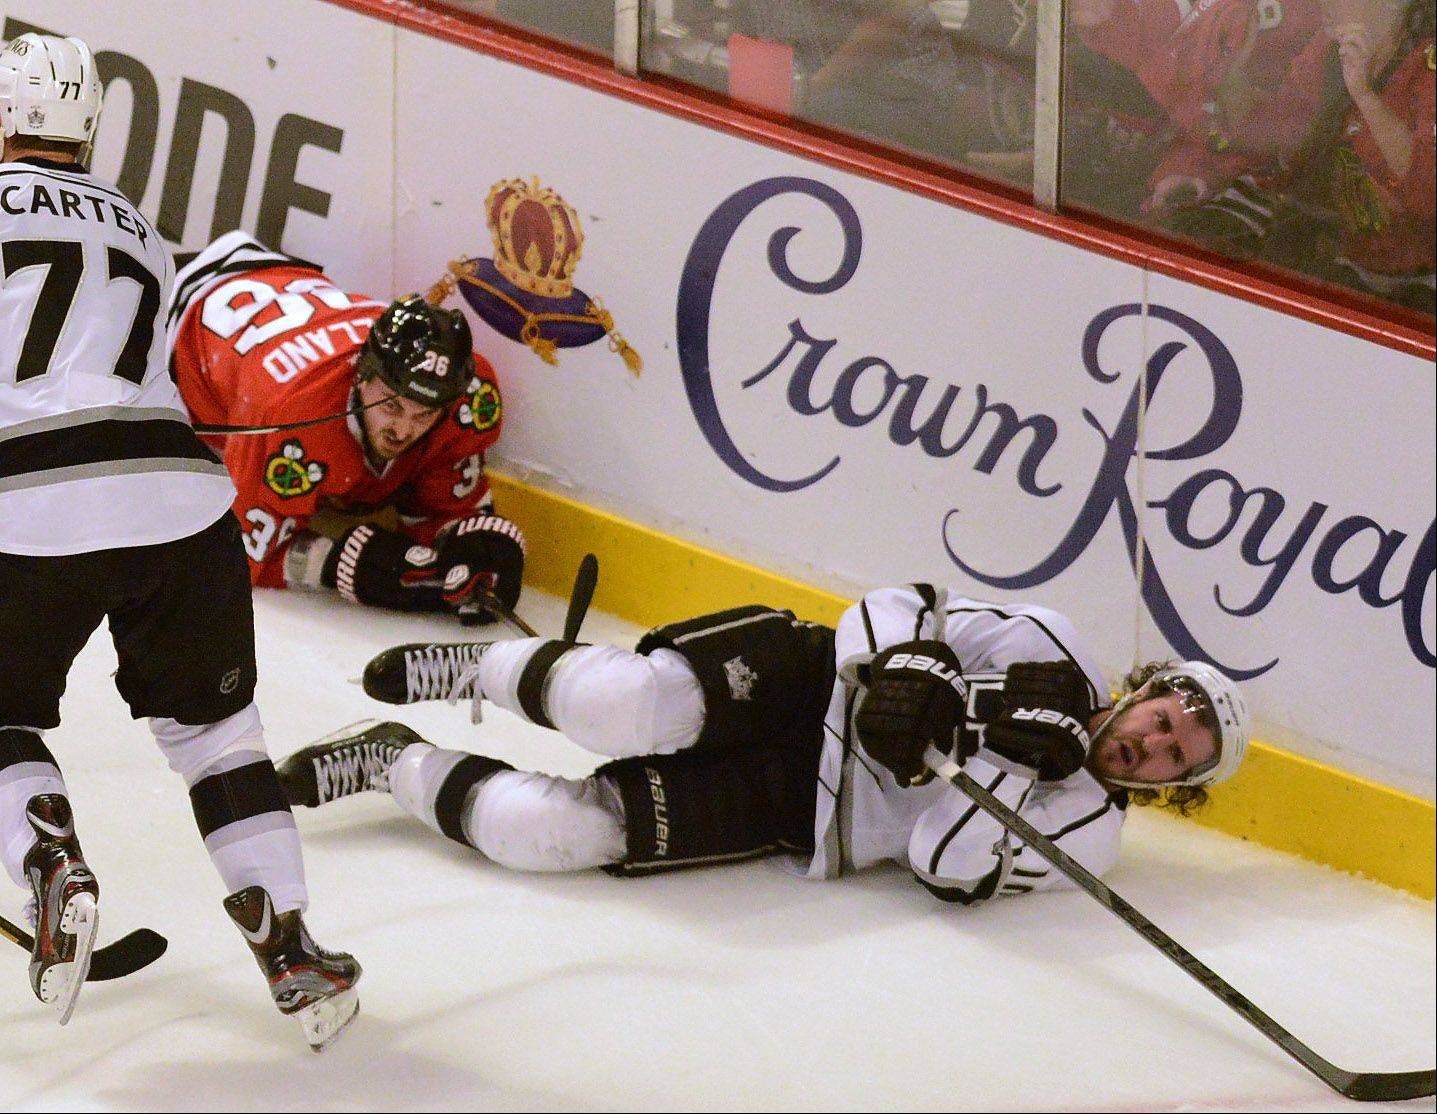 The Kings' Mike Richards protests after being leveled by Dave Bolland in third-period action in Game 1 of the Western Conference finals between the Chicago Blackhawks and the Los Angeles Kings.